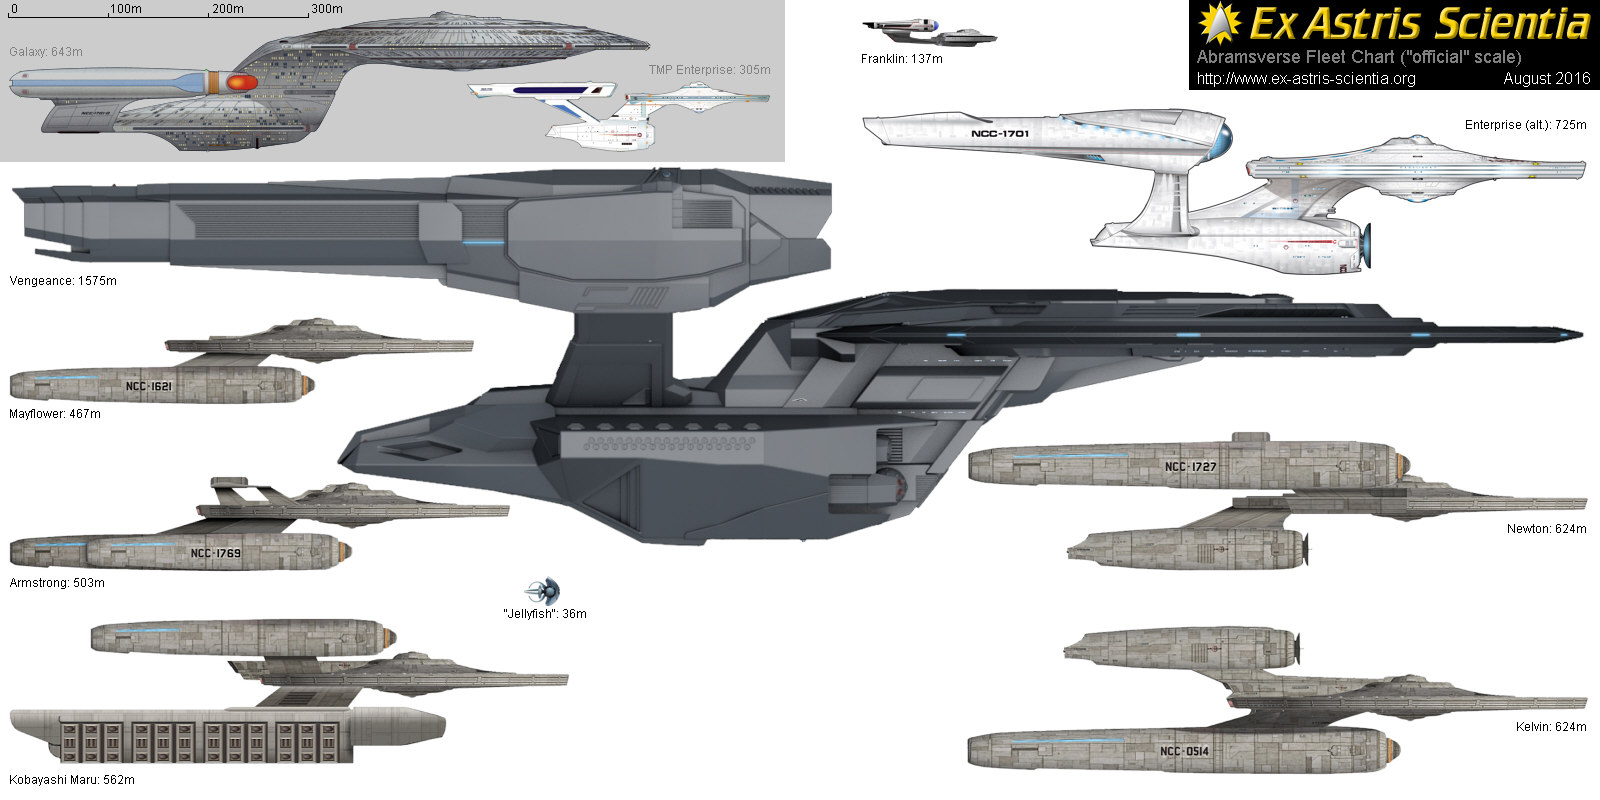 hight resolution of abramsverse fleet chart official scale scale 1 pixel 1m